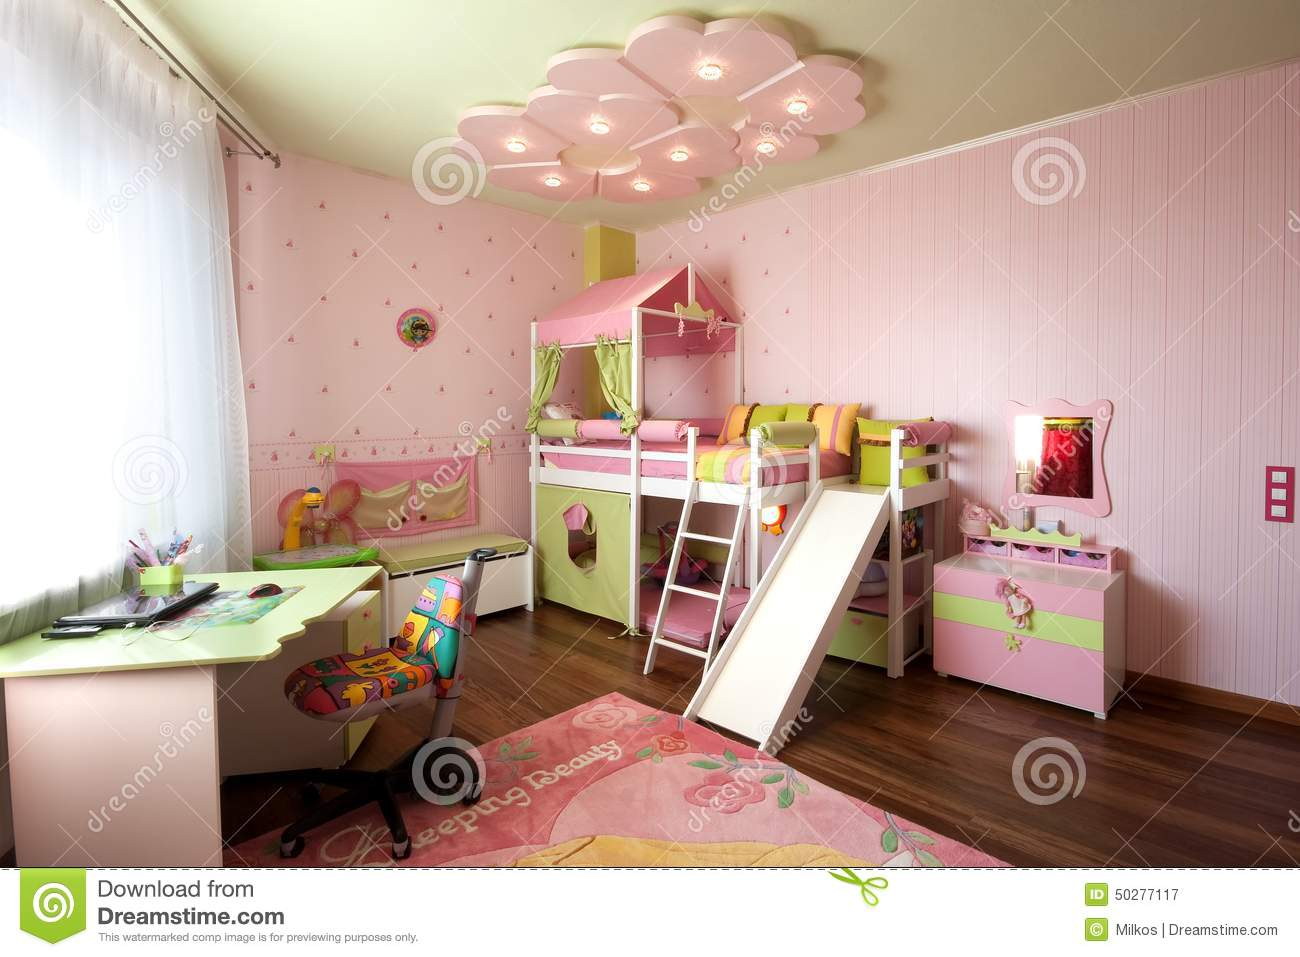 Modern Design Of A Child Room Interior In Pastel Colors